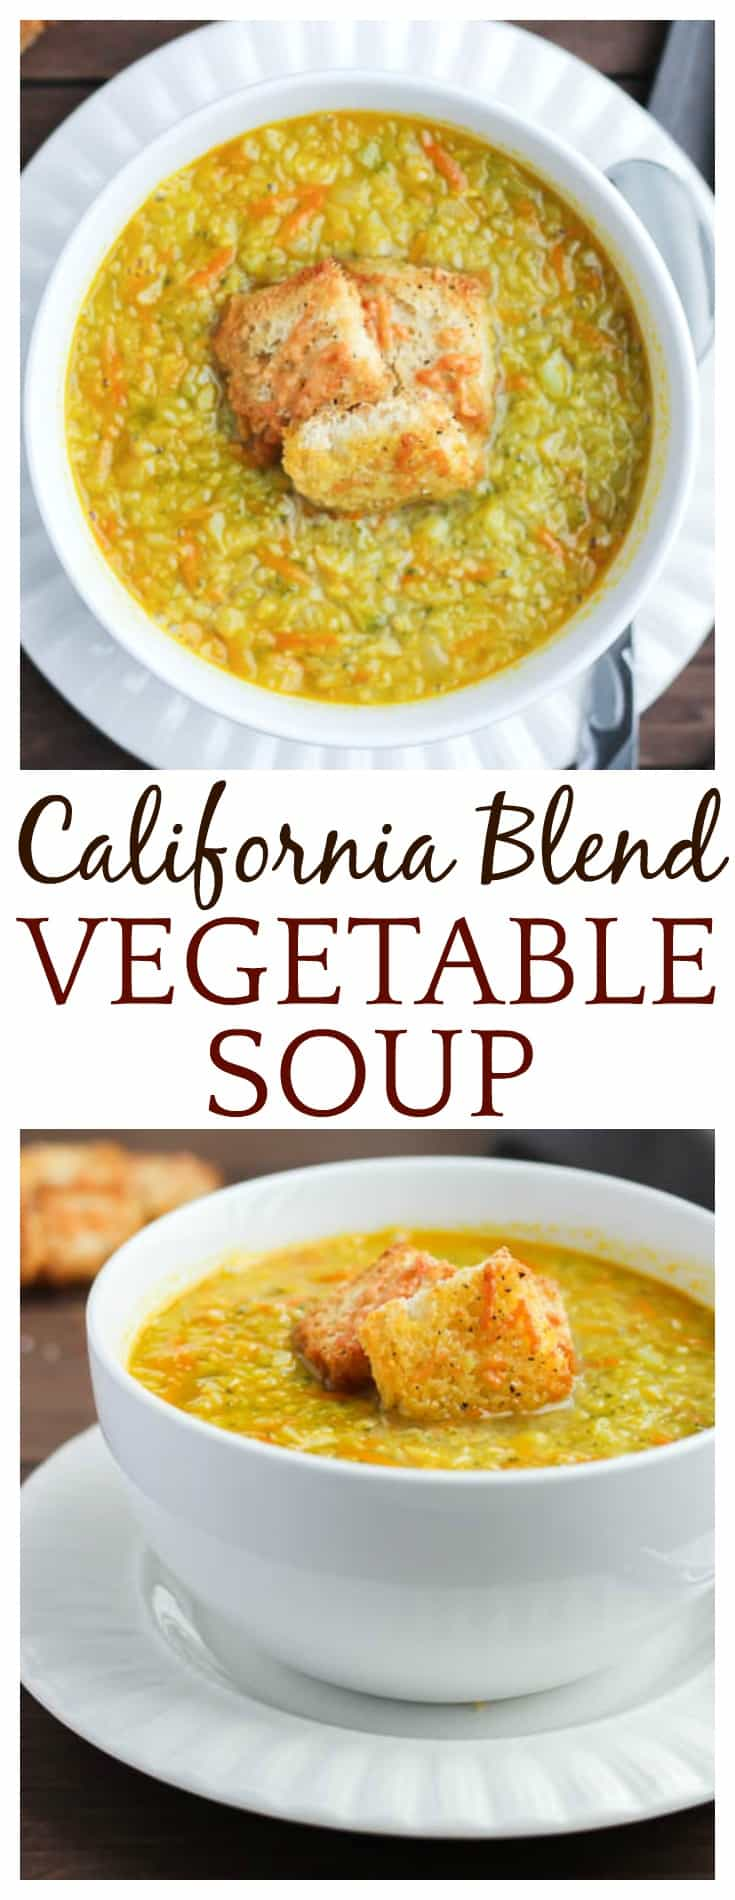 Cauliflower, broccoli, and carrots come together deliciously in this California Blend Vegetable Soup topped with Parmesan Croutons! | vegetarian soup recipe gluten free low carb #soup #DLB